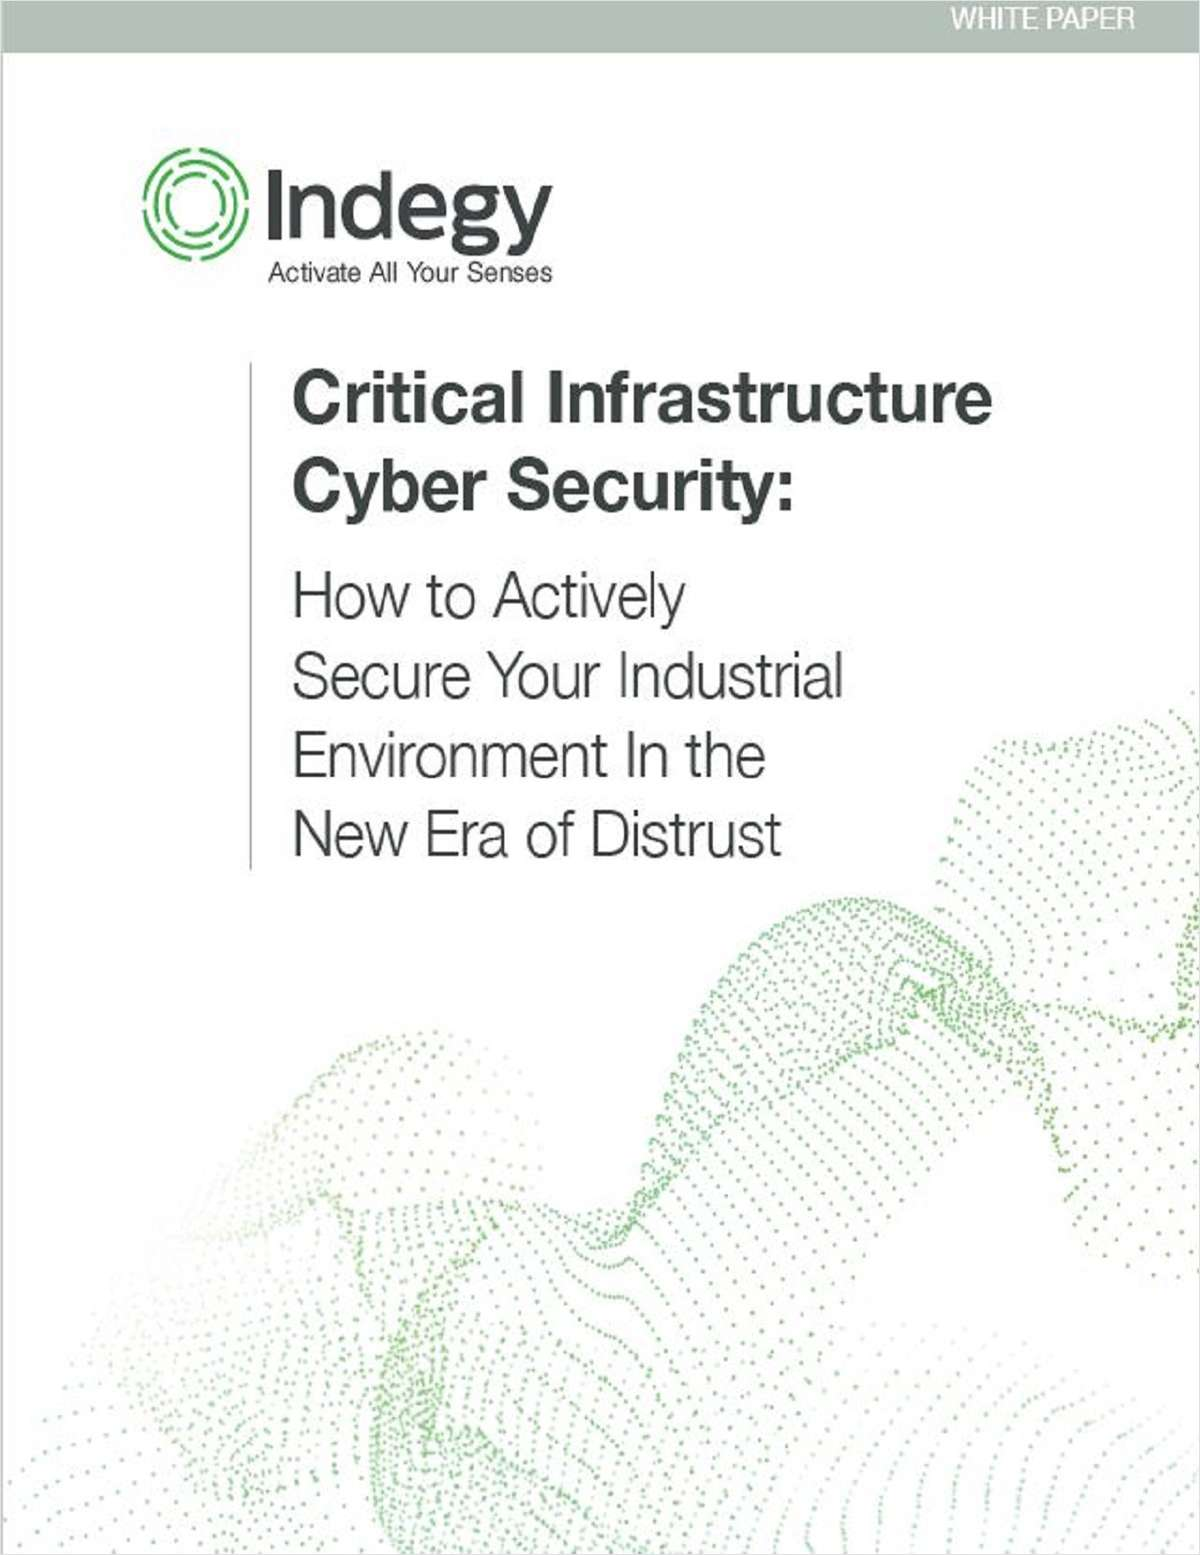 Critical Infrastructure Cyber Security White Paper